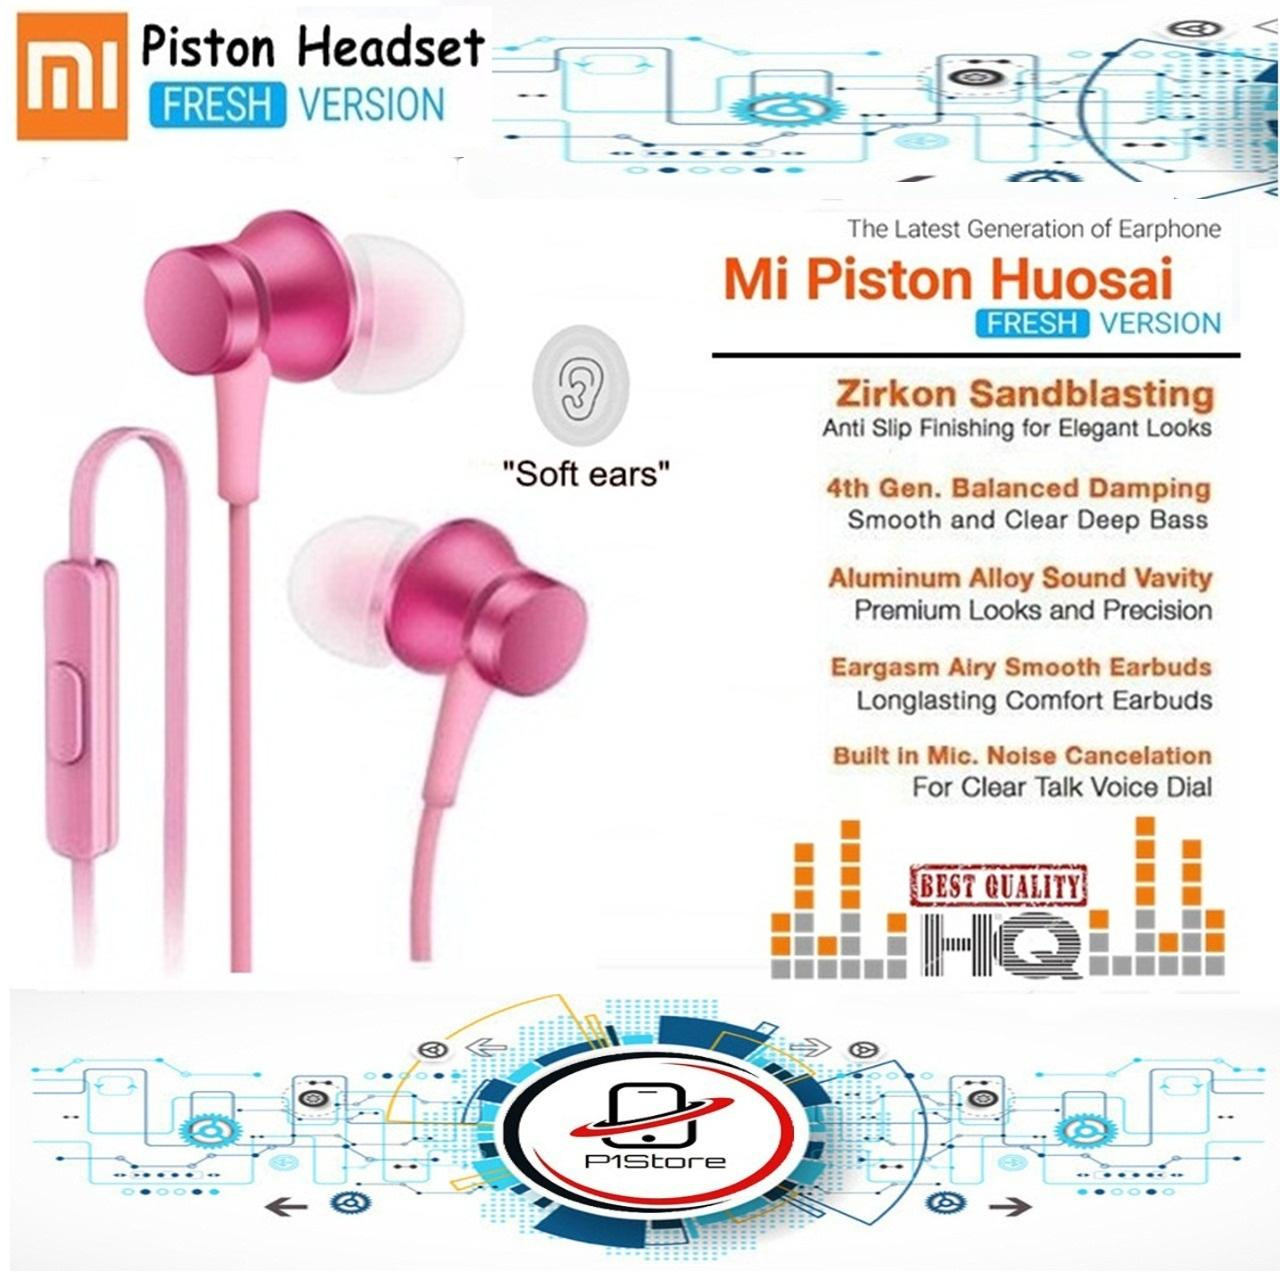 Xiaomi Mi Piston 3 Earphone Fresh Version Headset Versi Terbaru Huosai